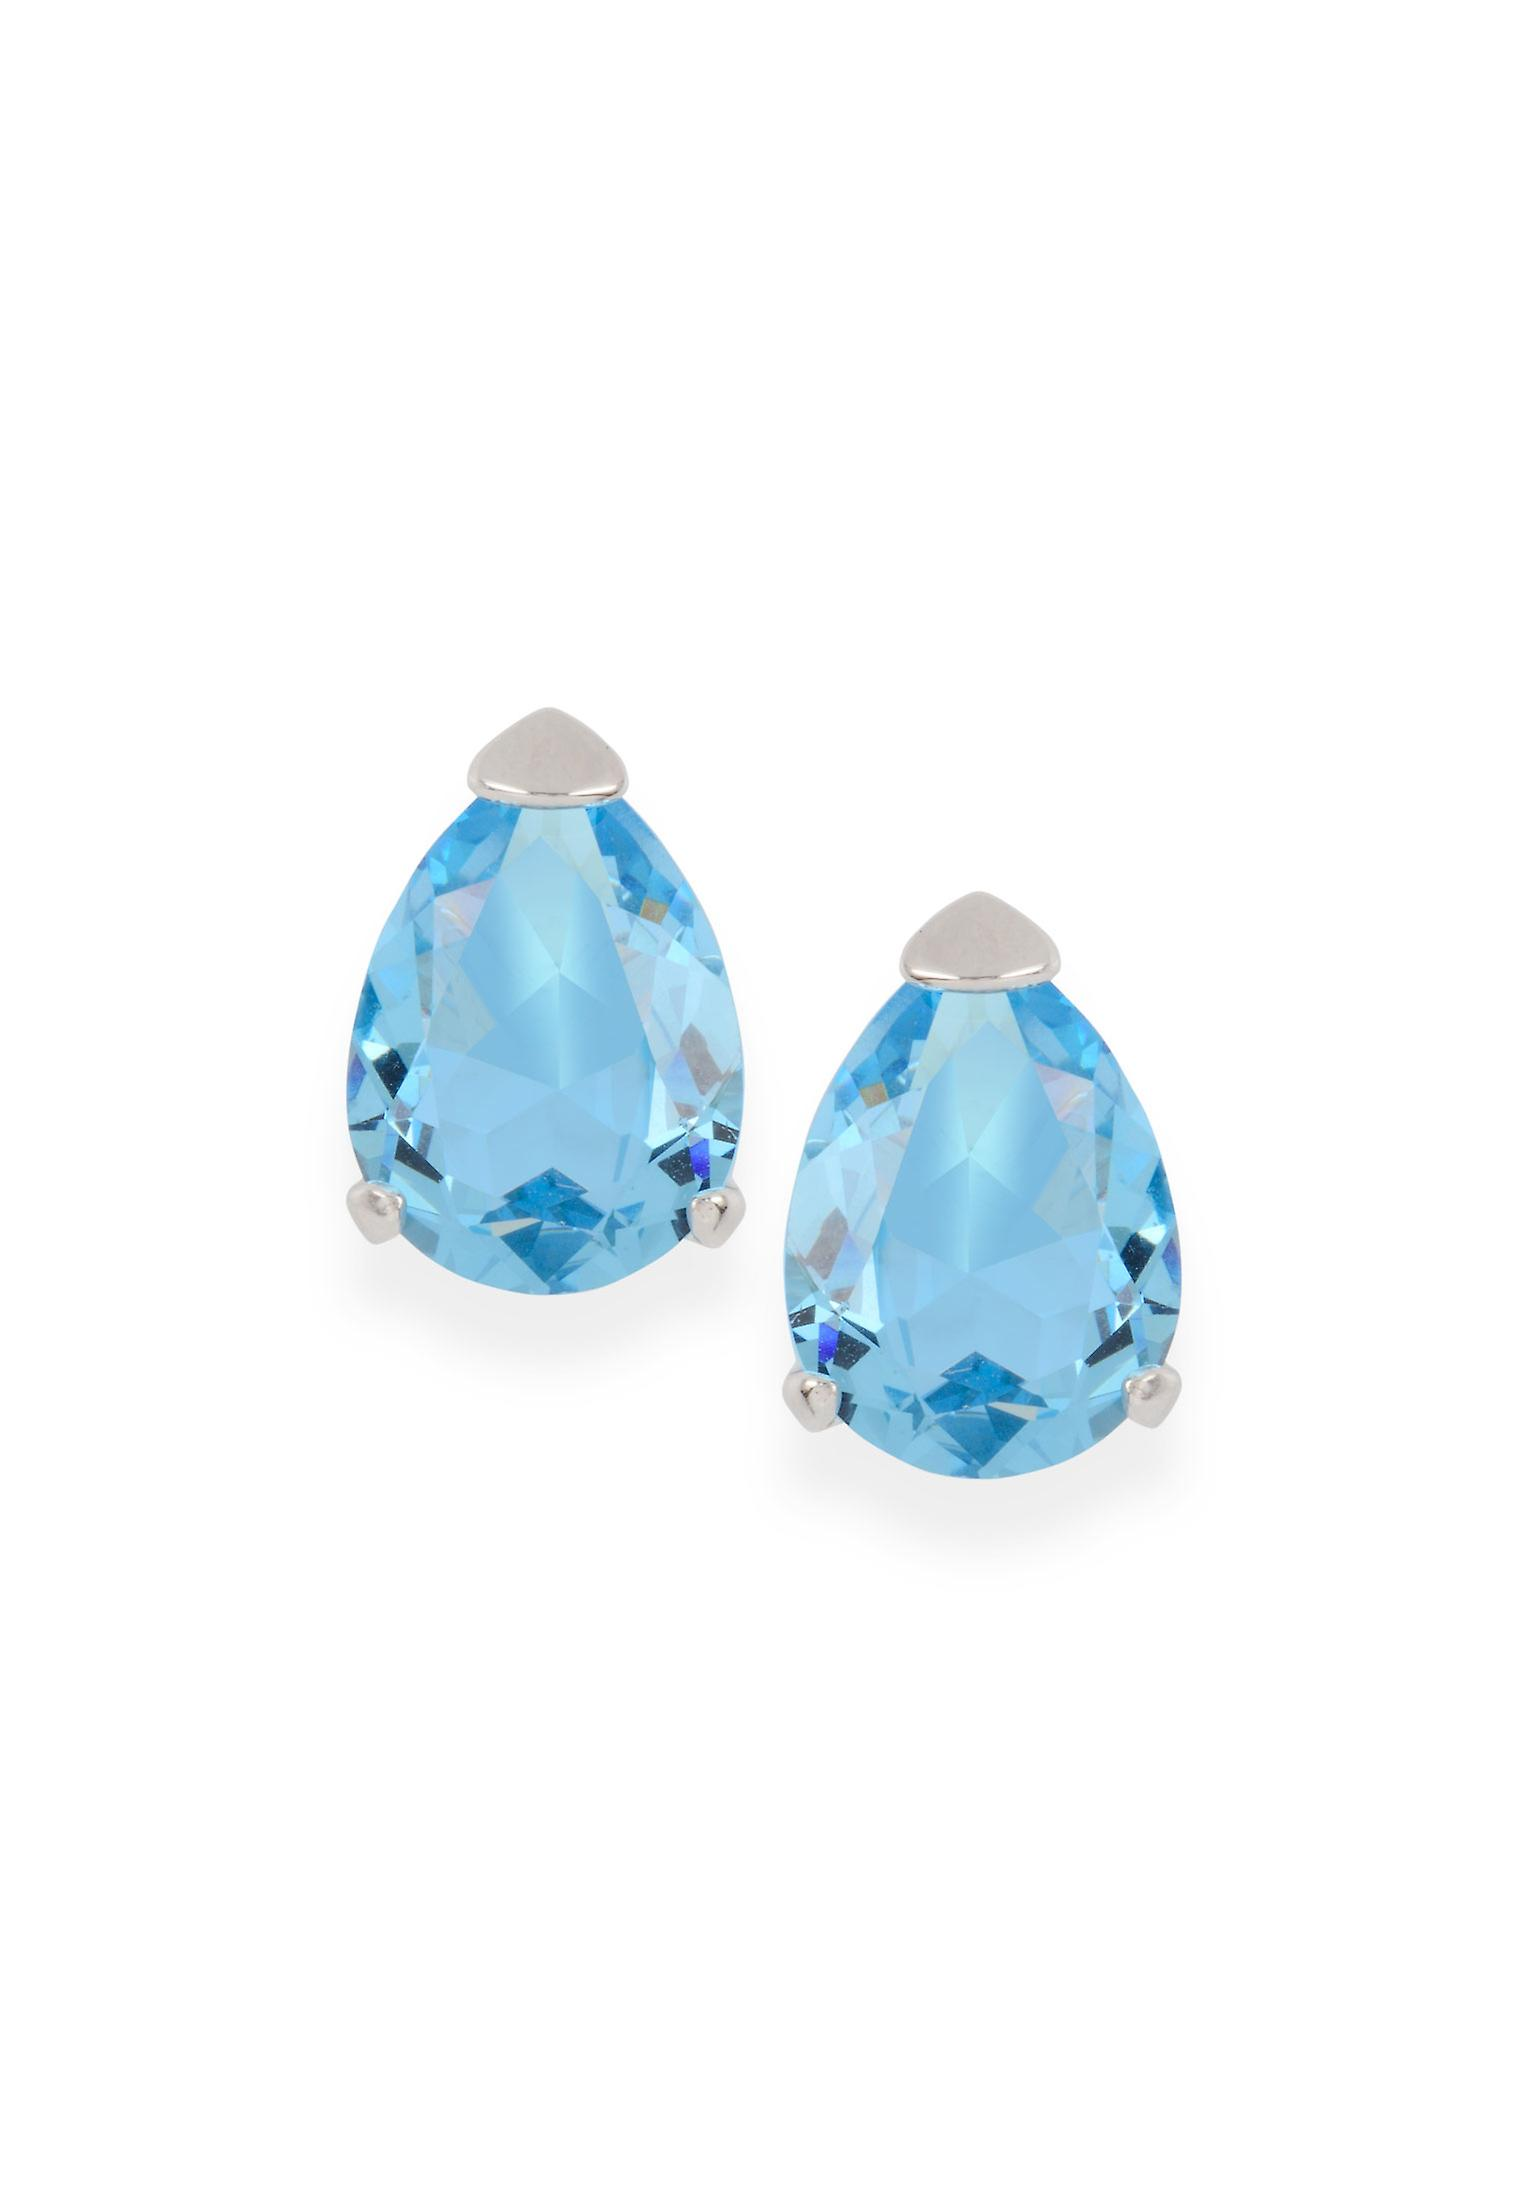 Blue earrings with crystals from Swarovski 391